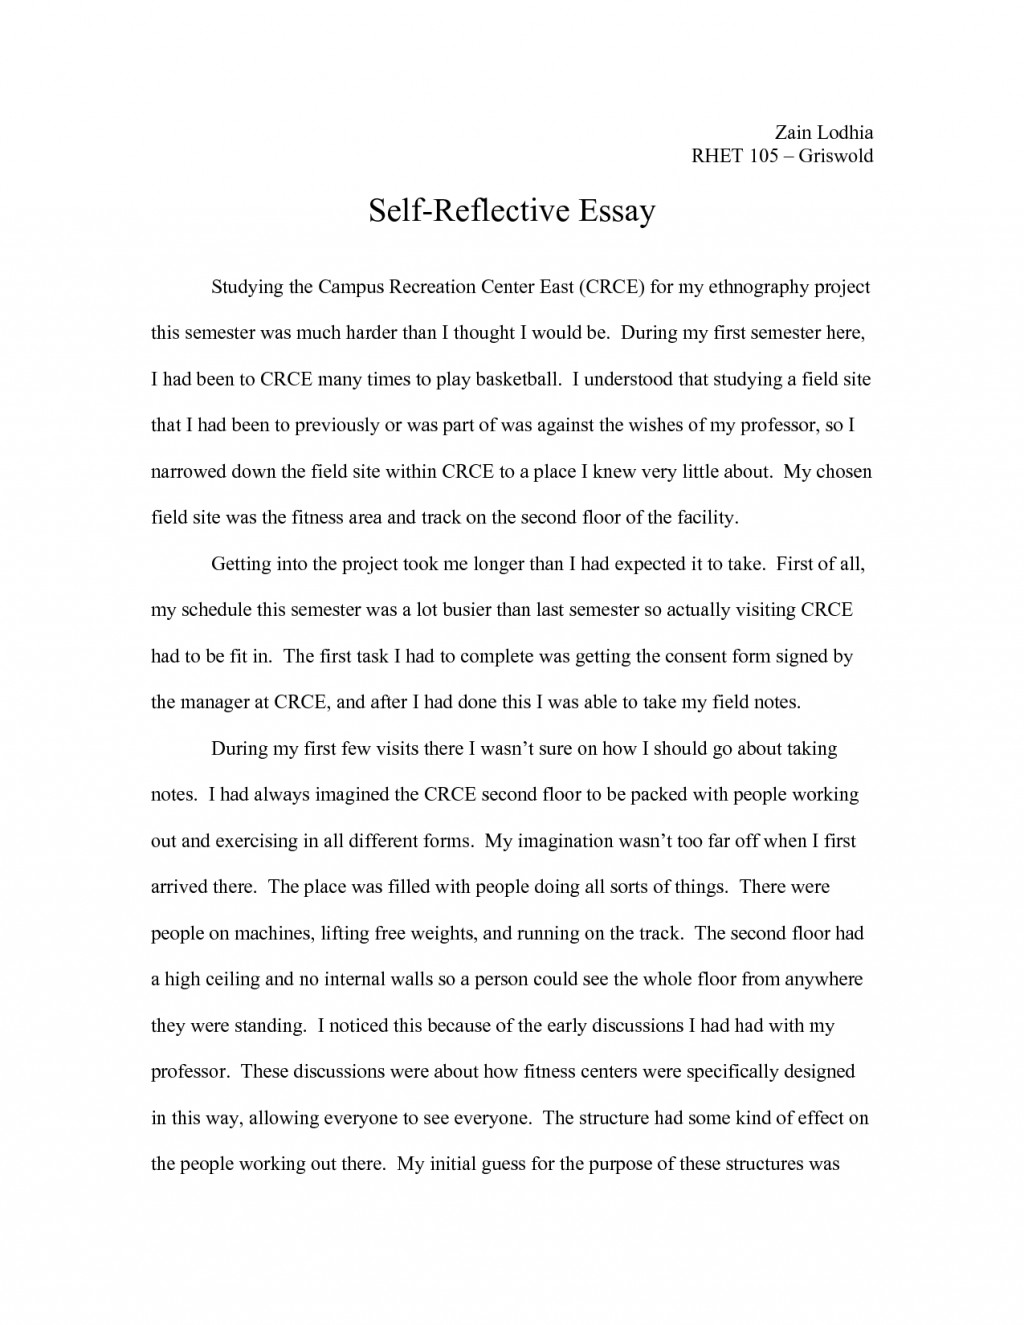 003 Qal0pwnf46 Reflective Essays Beautiful Essay Examples About Life Pdf Apa Large